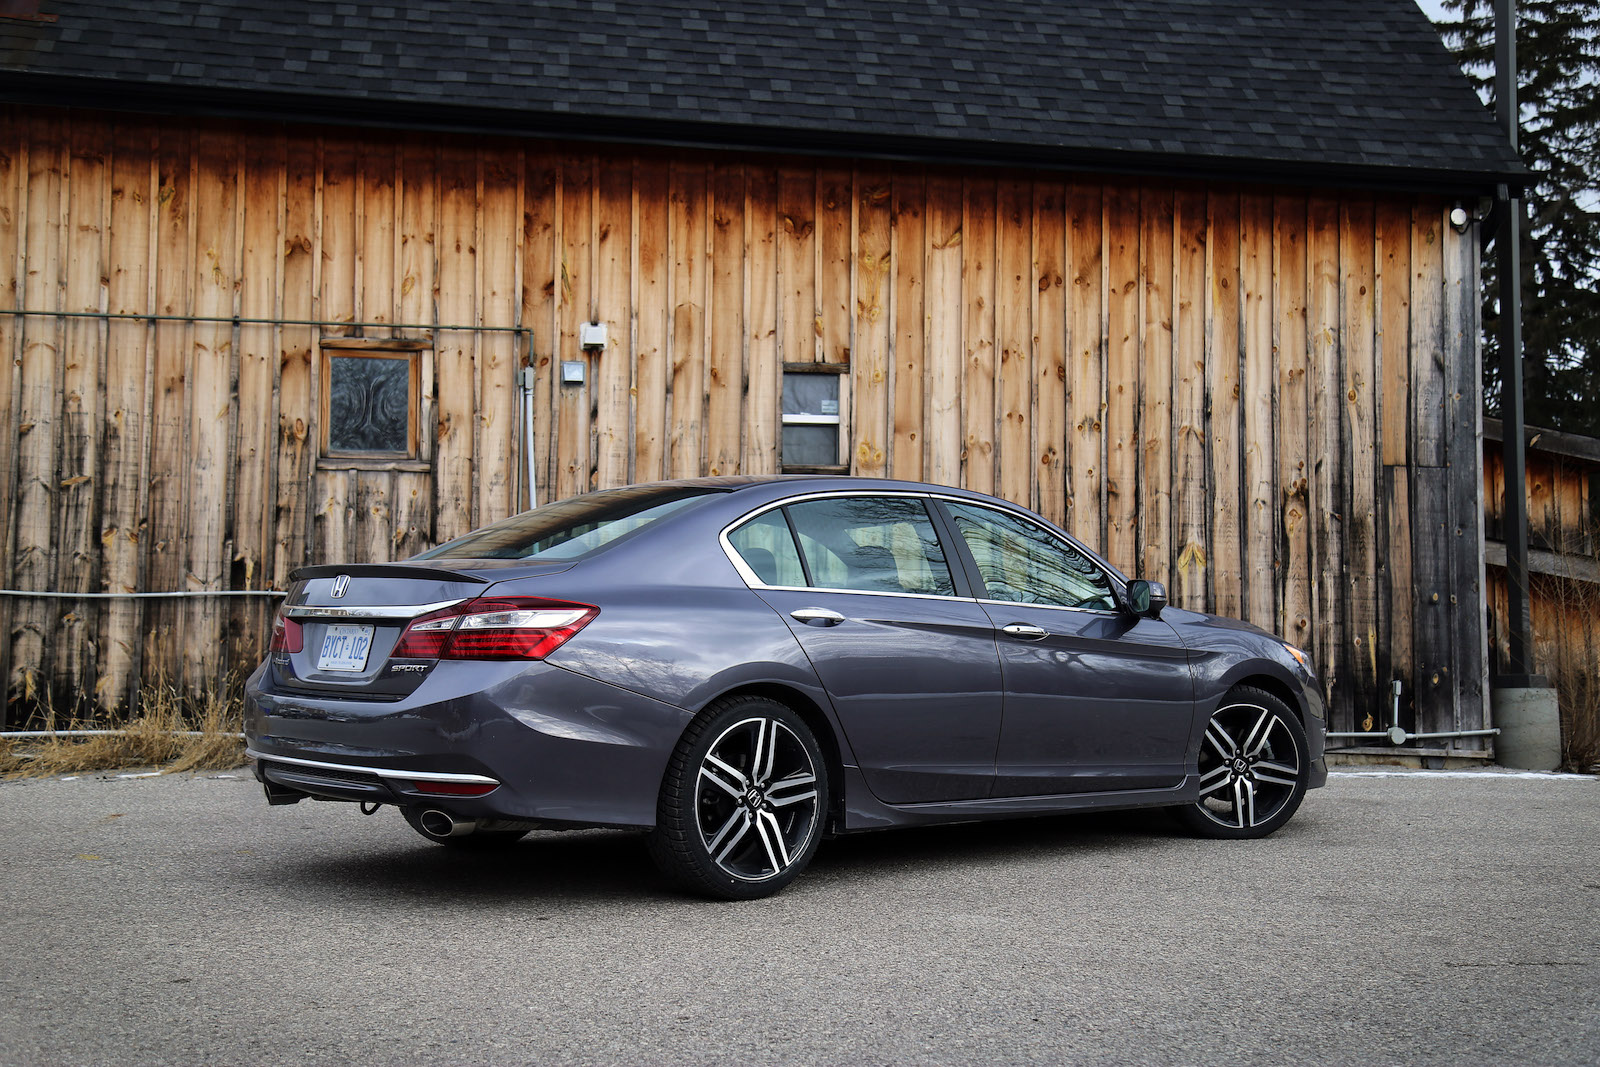 Honda Accord Sport >> Review: 2016 Honda Accord Sport | Canadian Auto Review